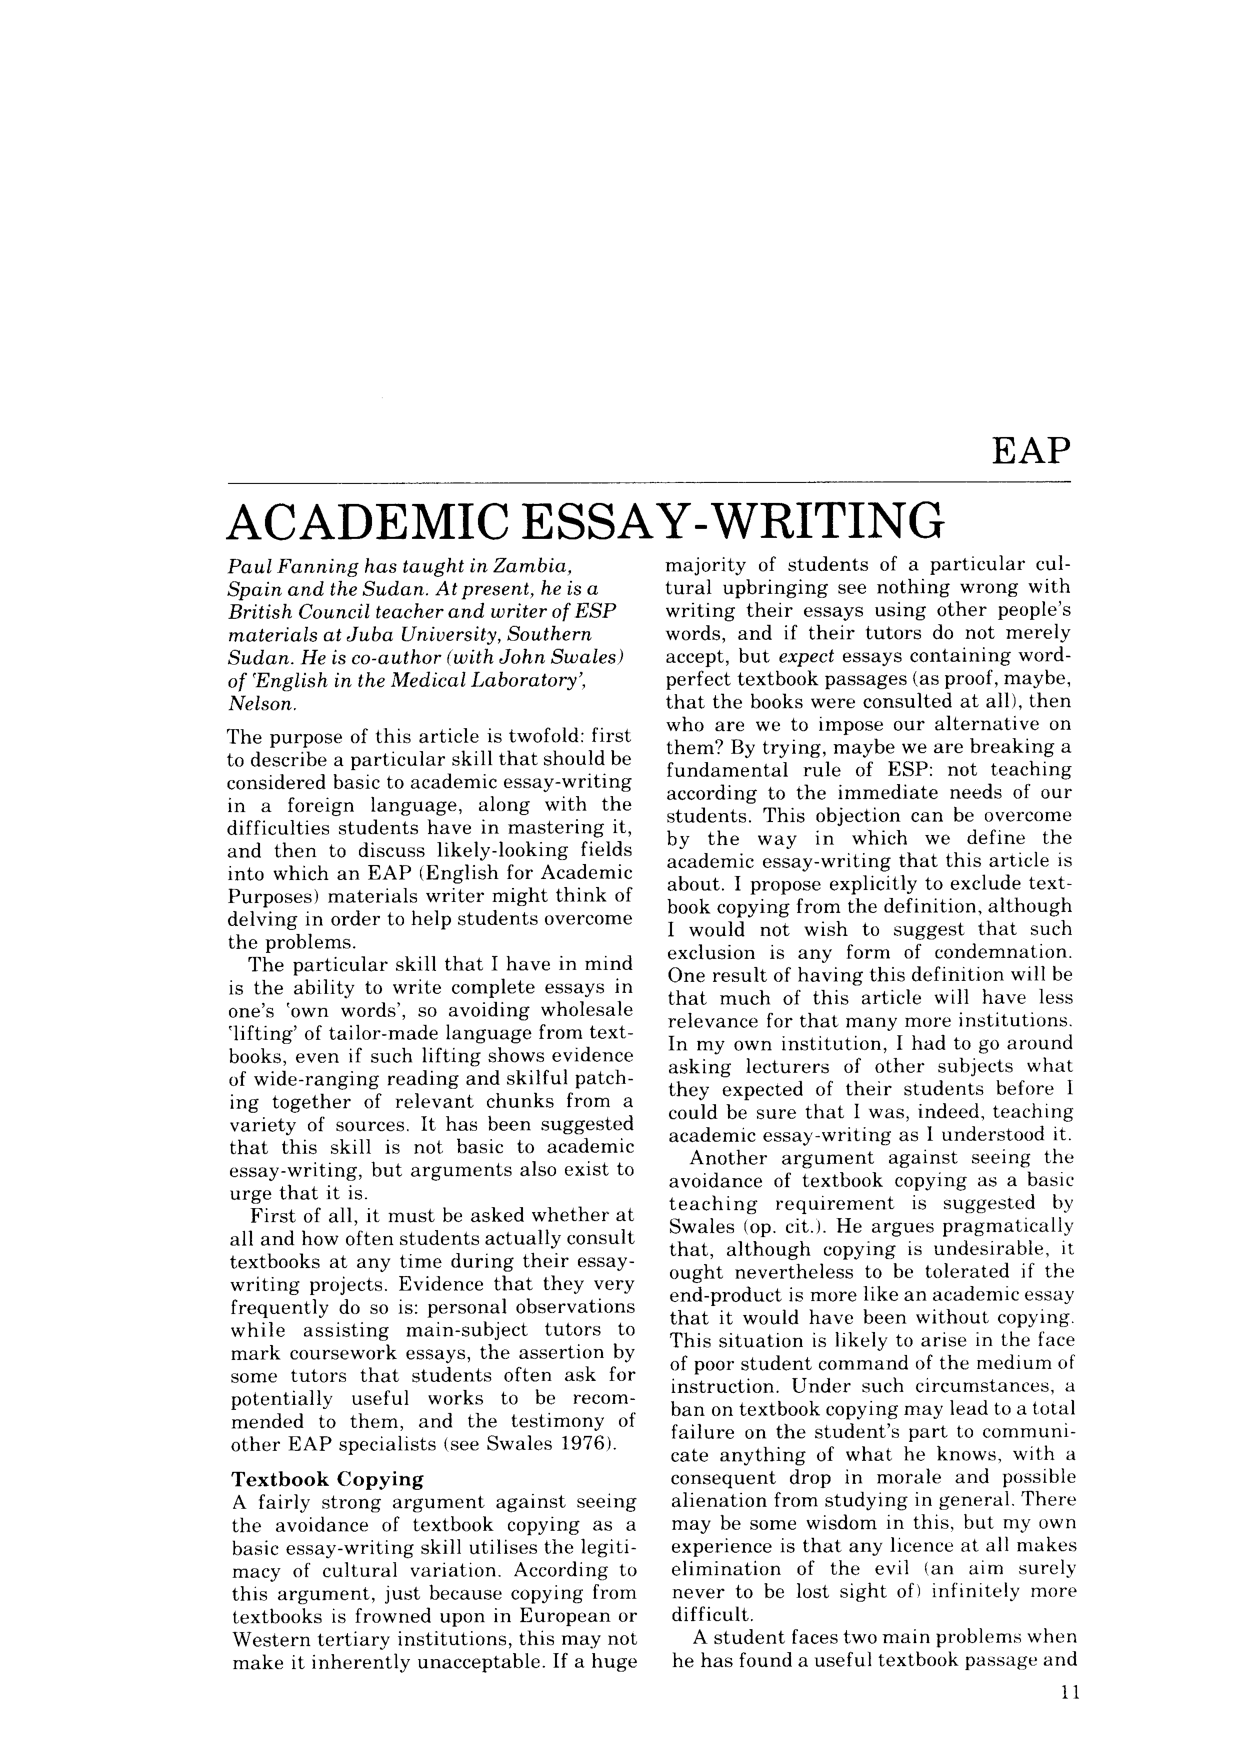 academic writing sample essay Ielts writing | from this page ielts academic task 1 writing sample band 5 report 1 ielts task 2 writing sample answer band 5 essay 1.